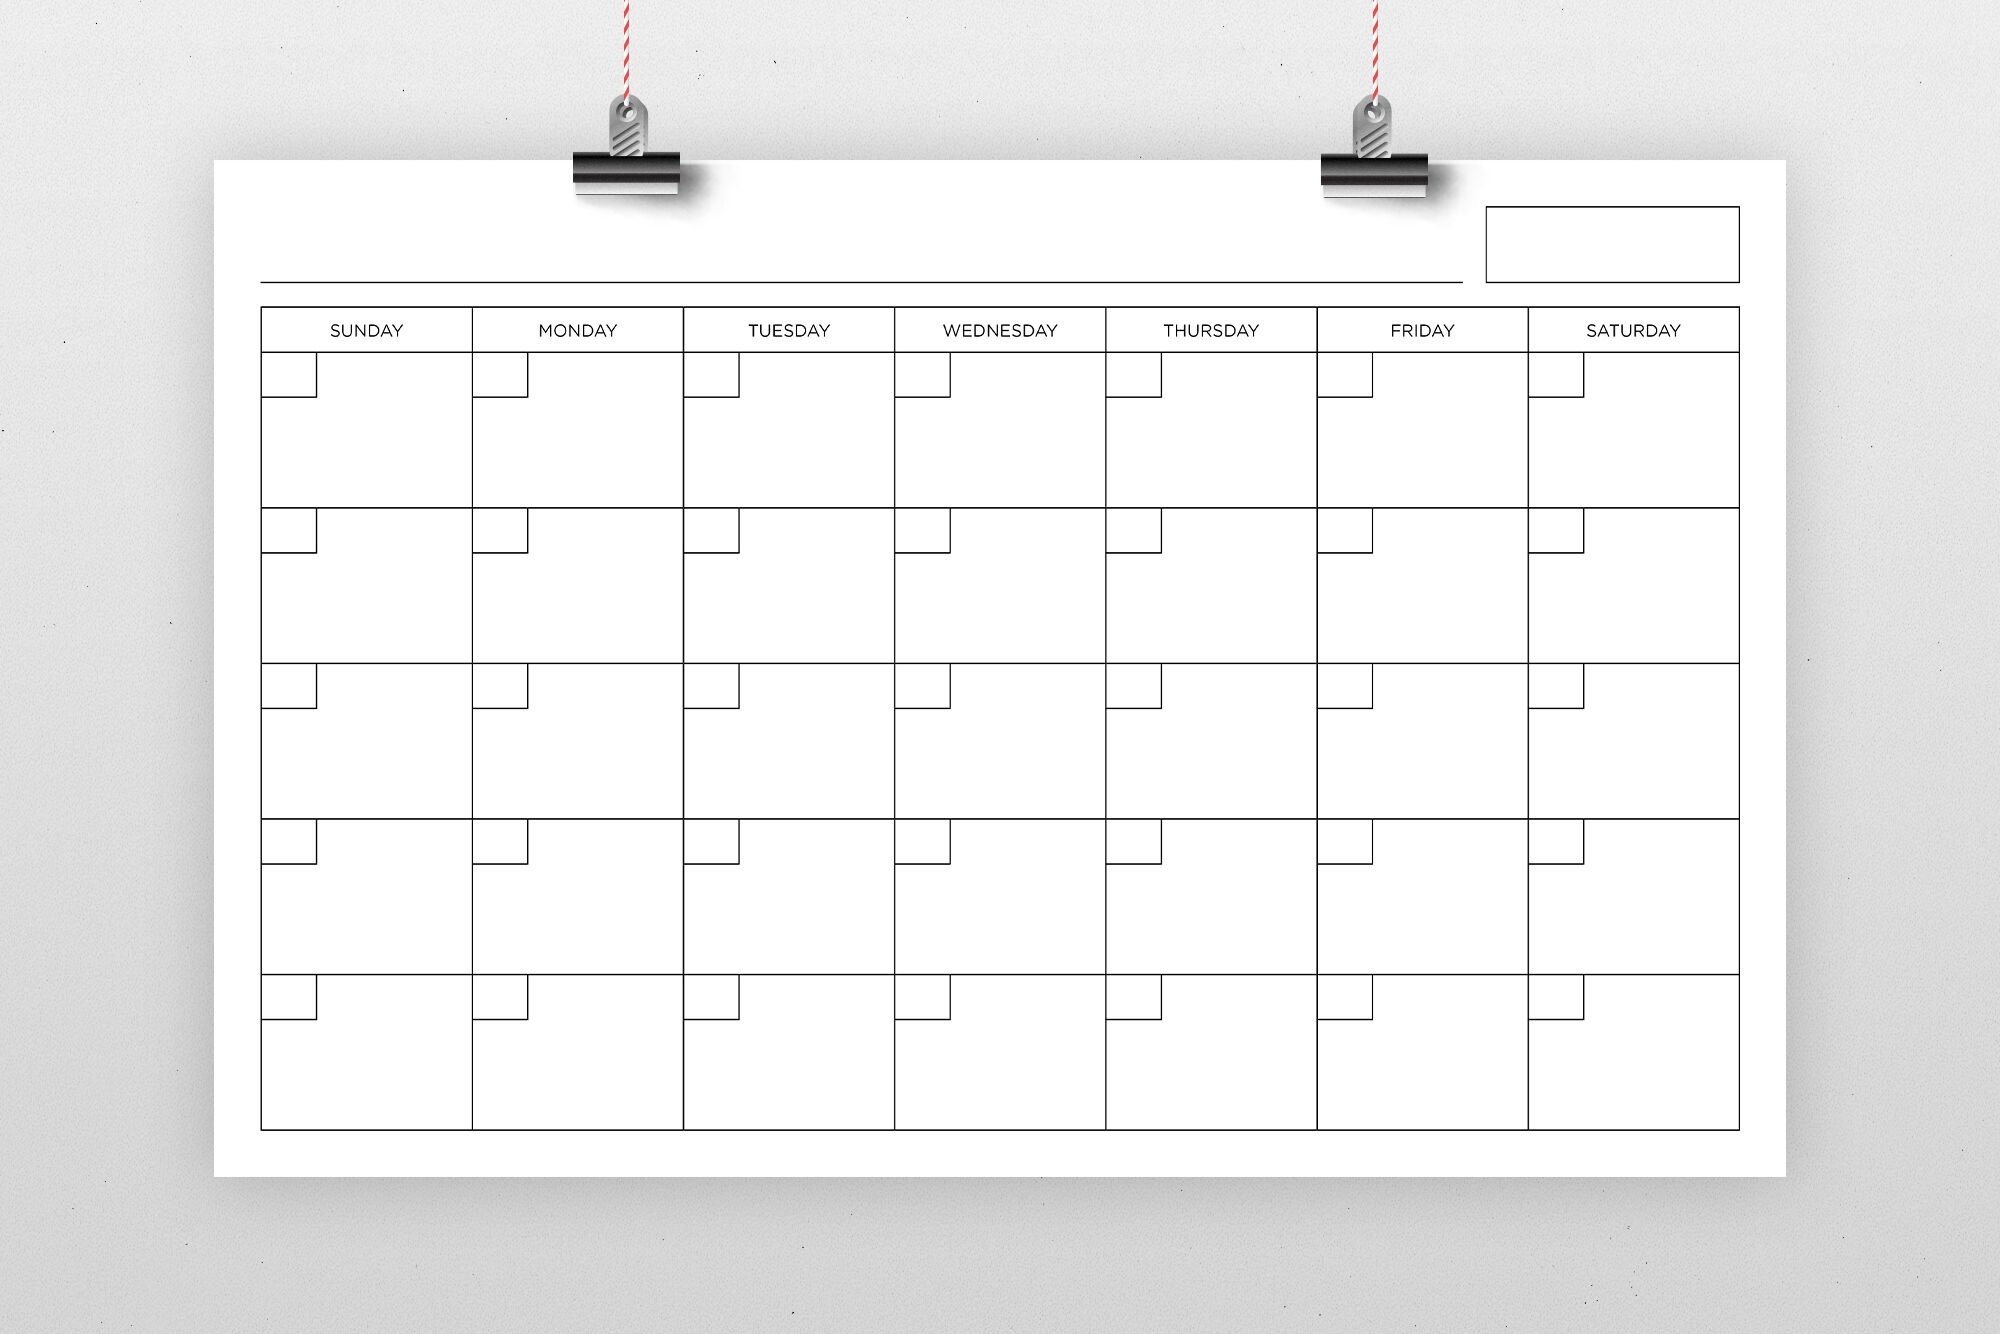 11X17 Inch Blank Calendar Page Templaterunning With throughout Free Printable 11X17 Monthly Calendar